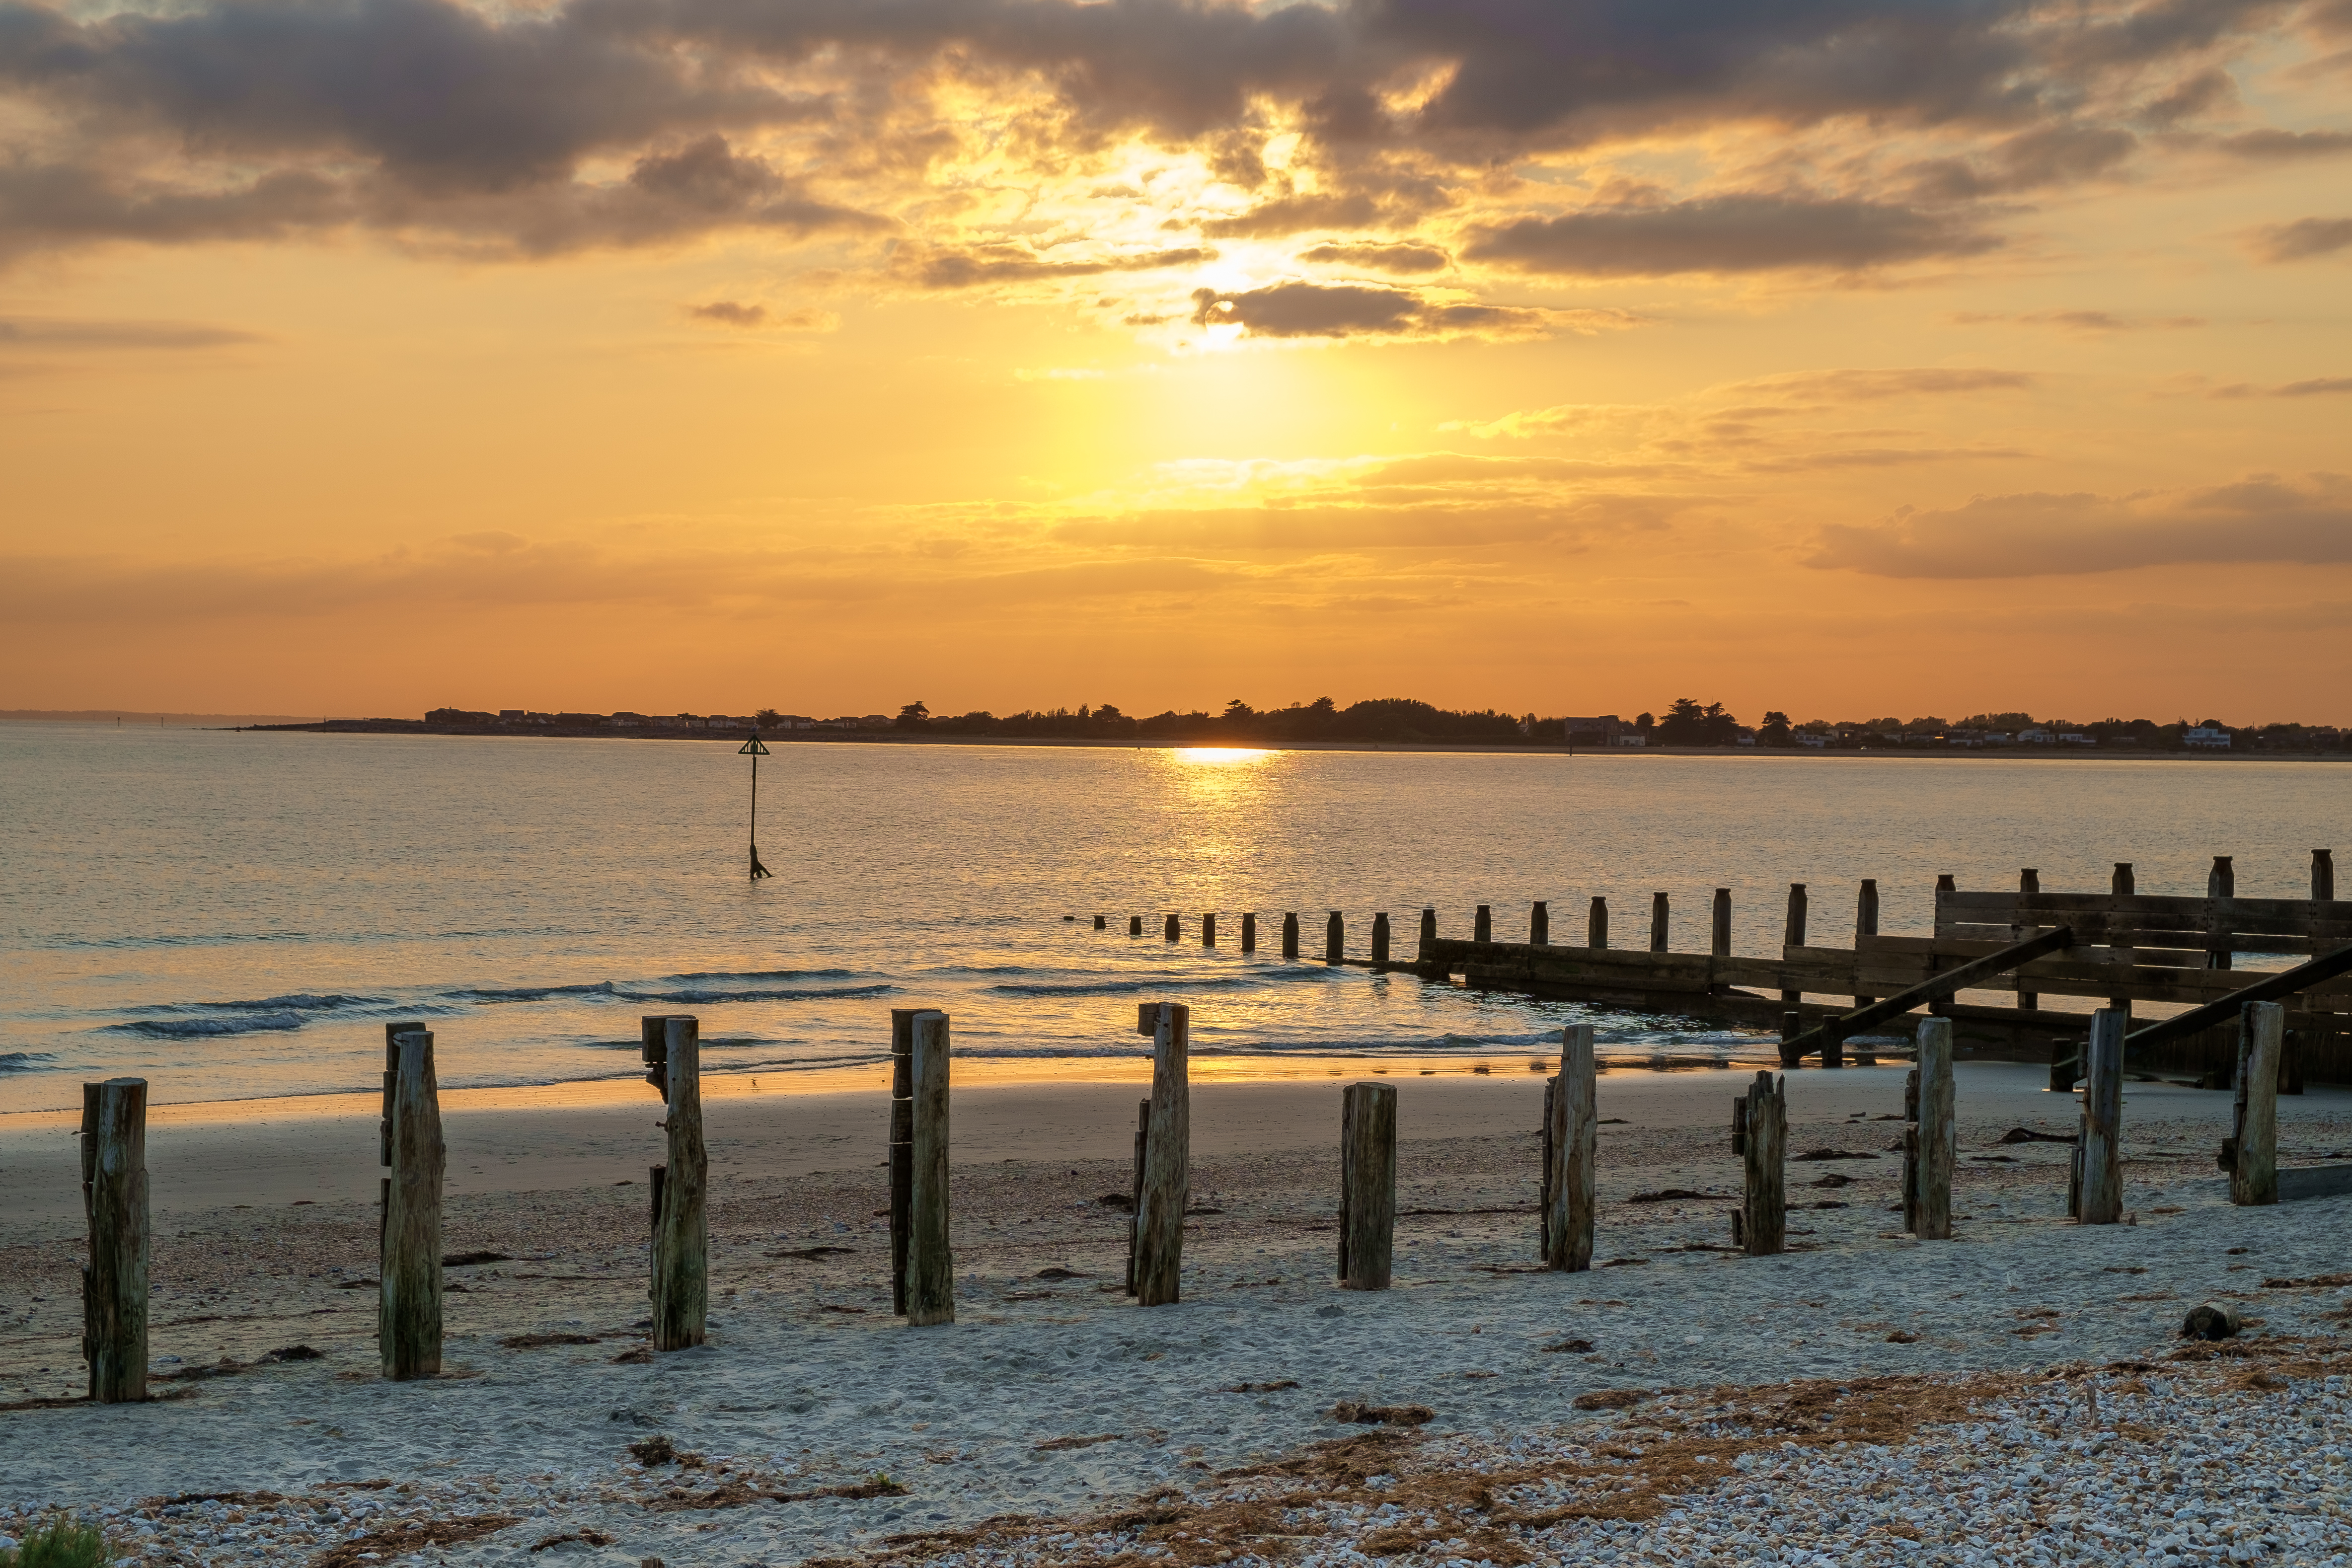 A wooden sea groyne stretches out into a calm sea in the golden light of the setting sun